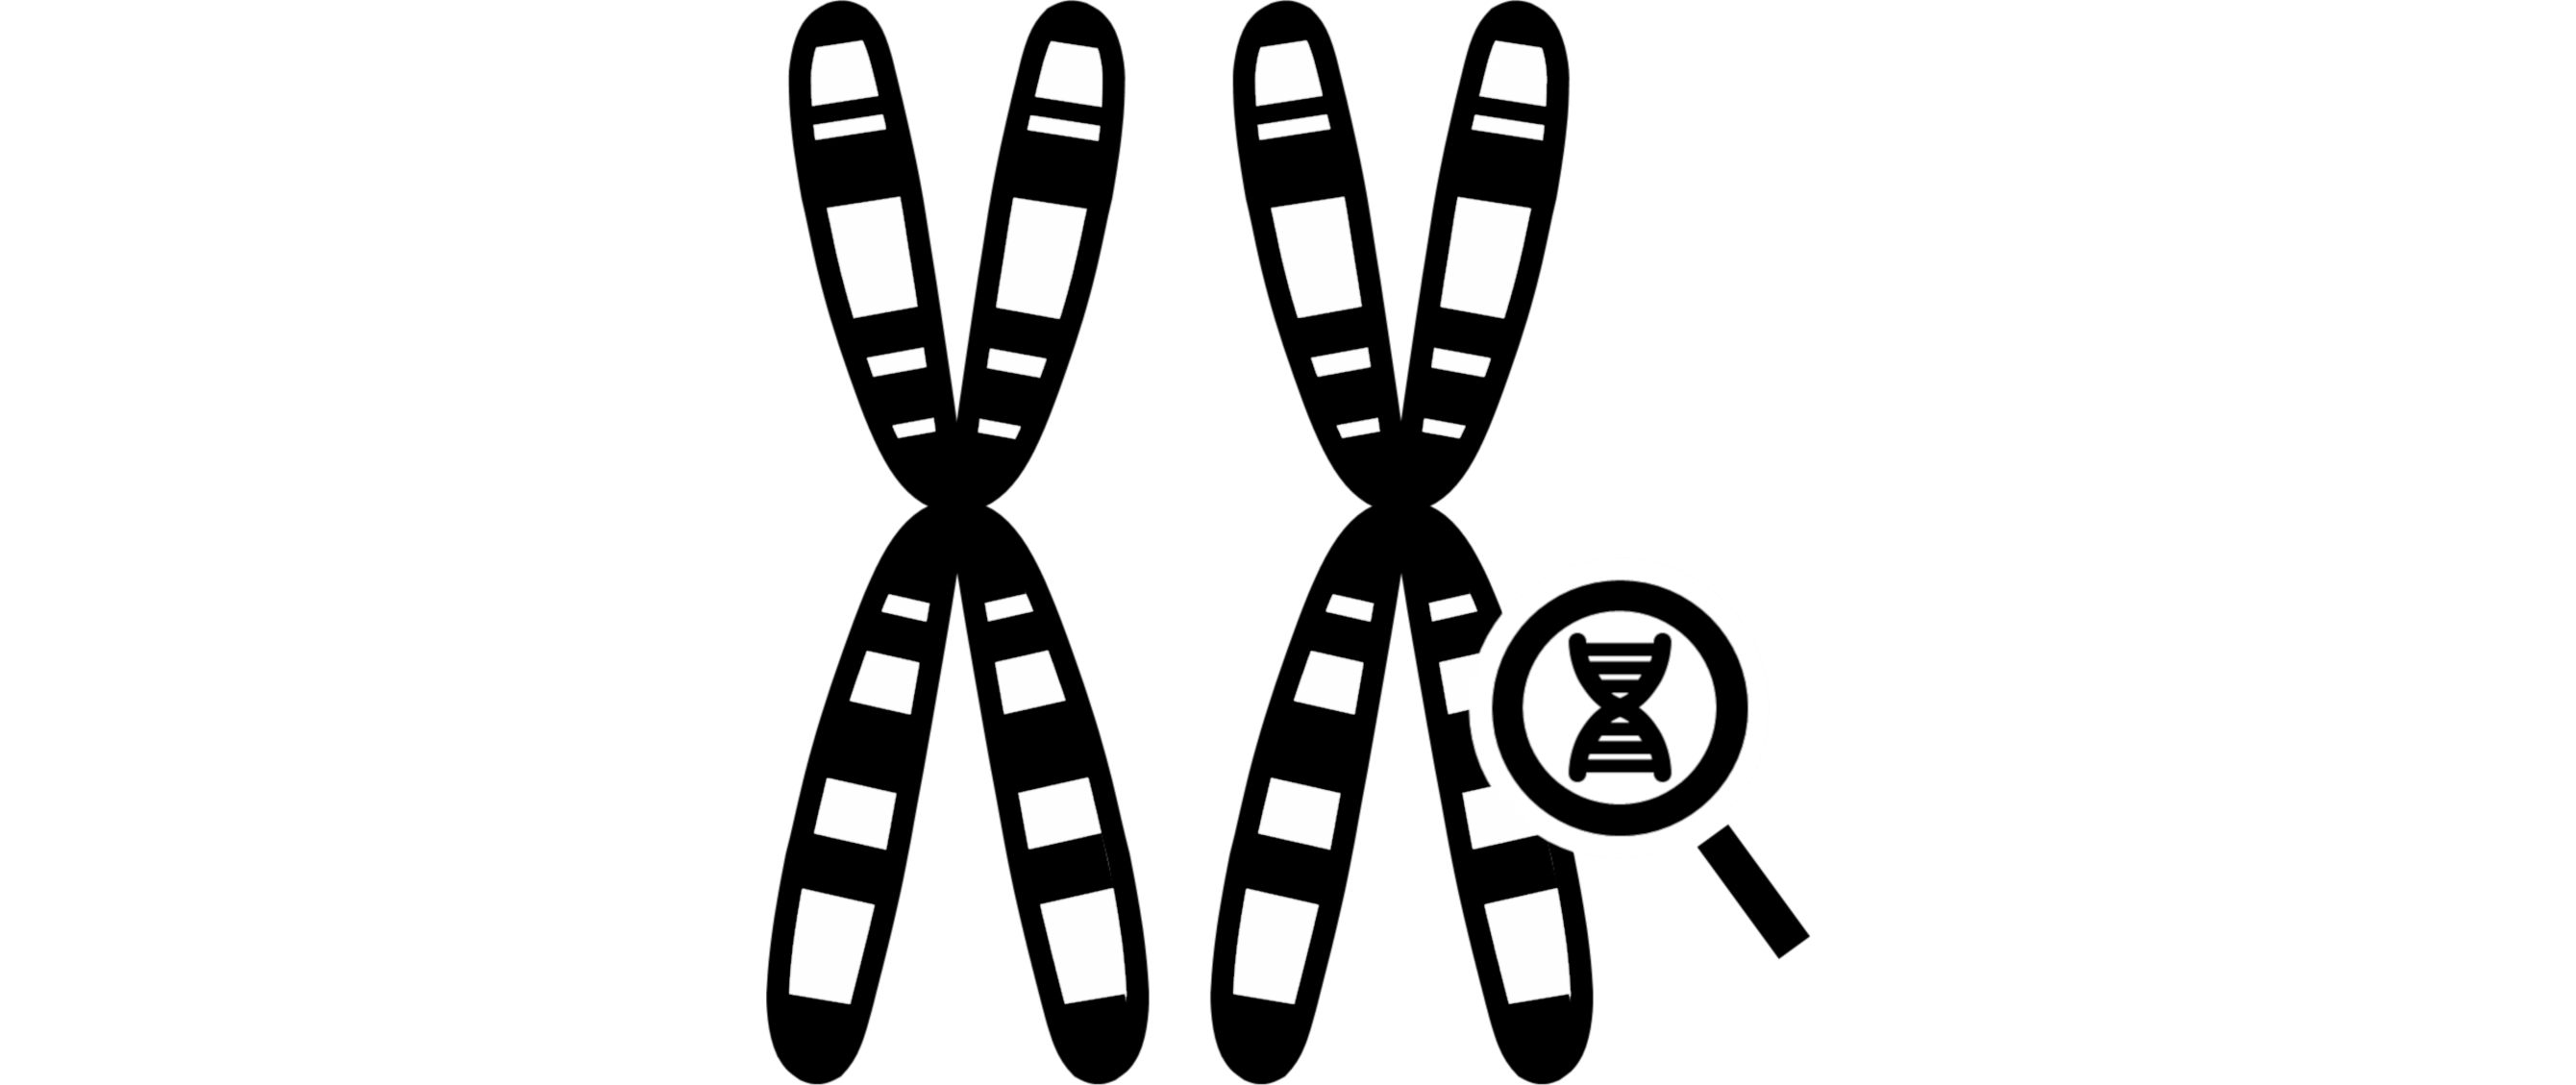 Genome icon